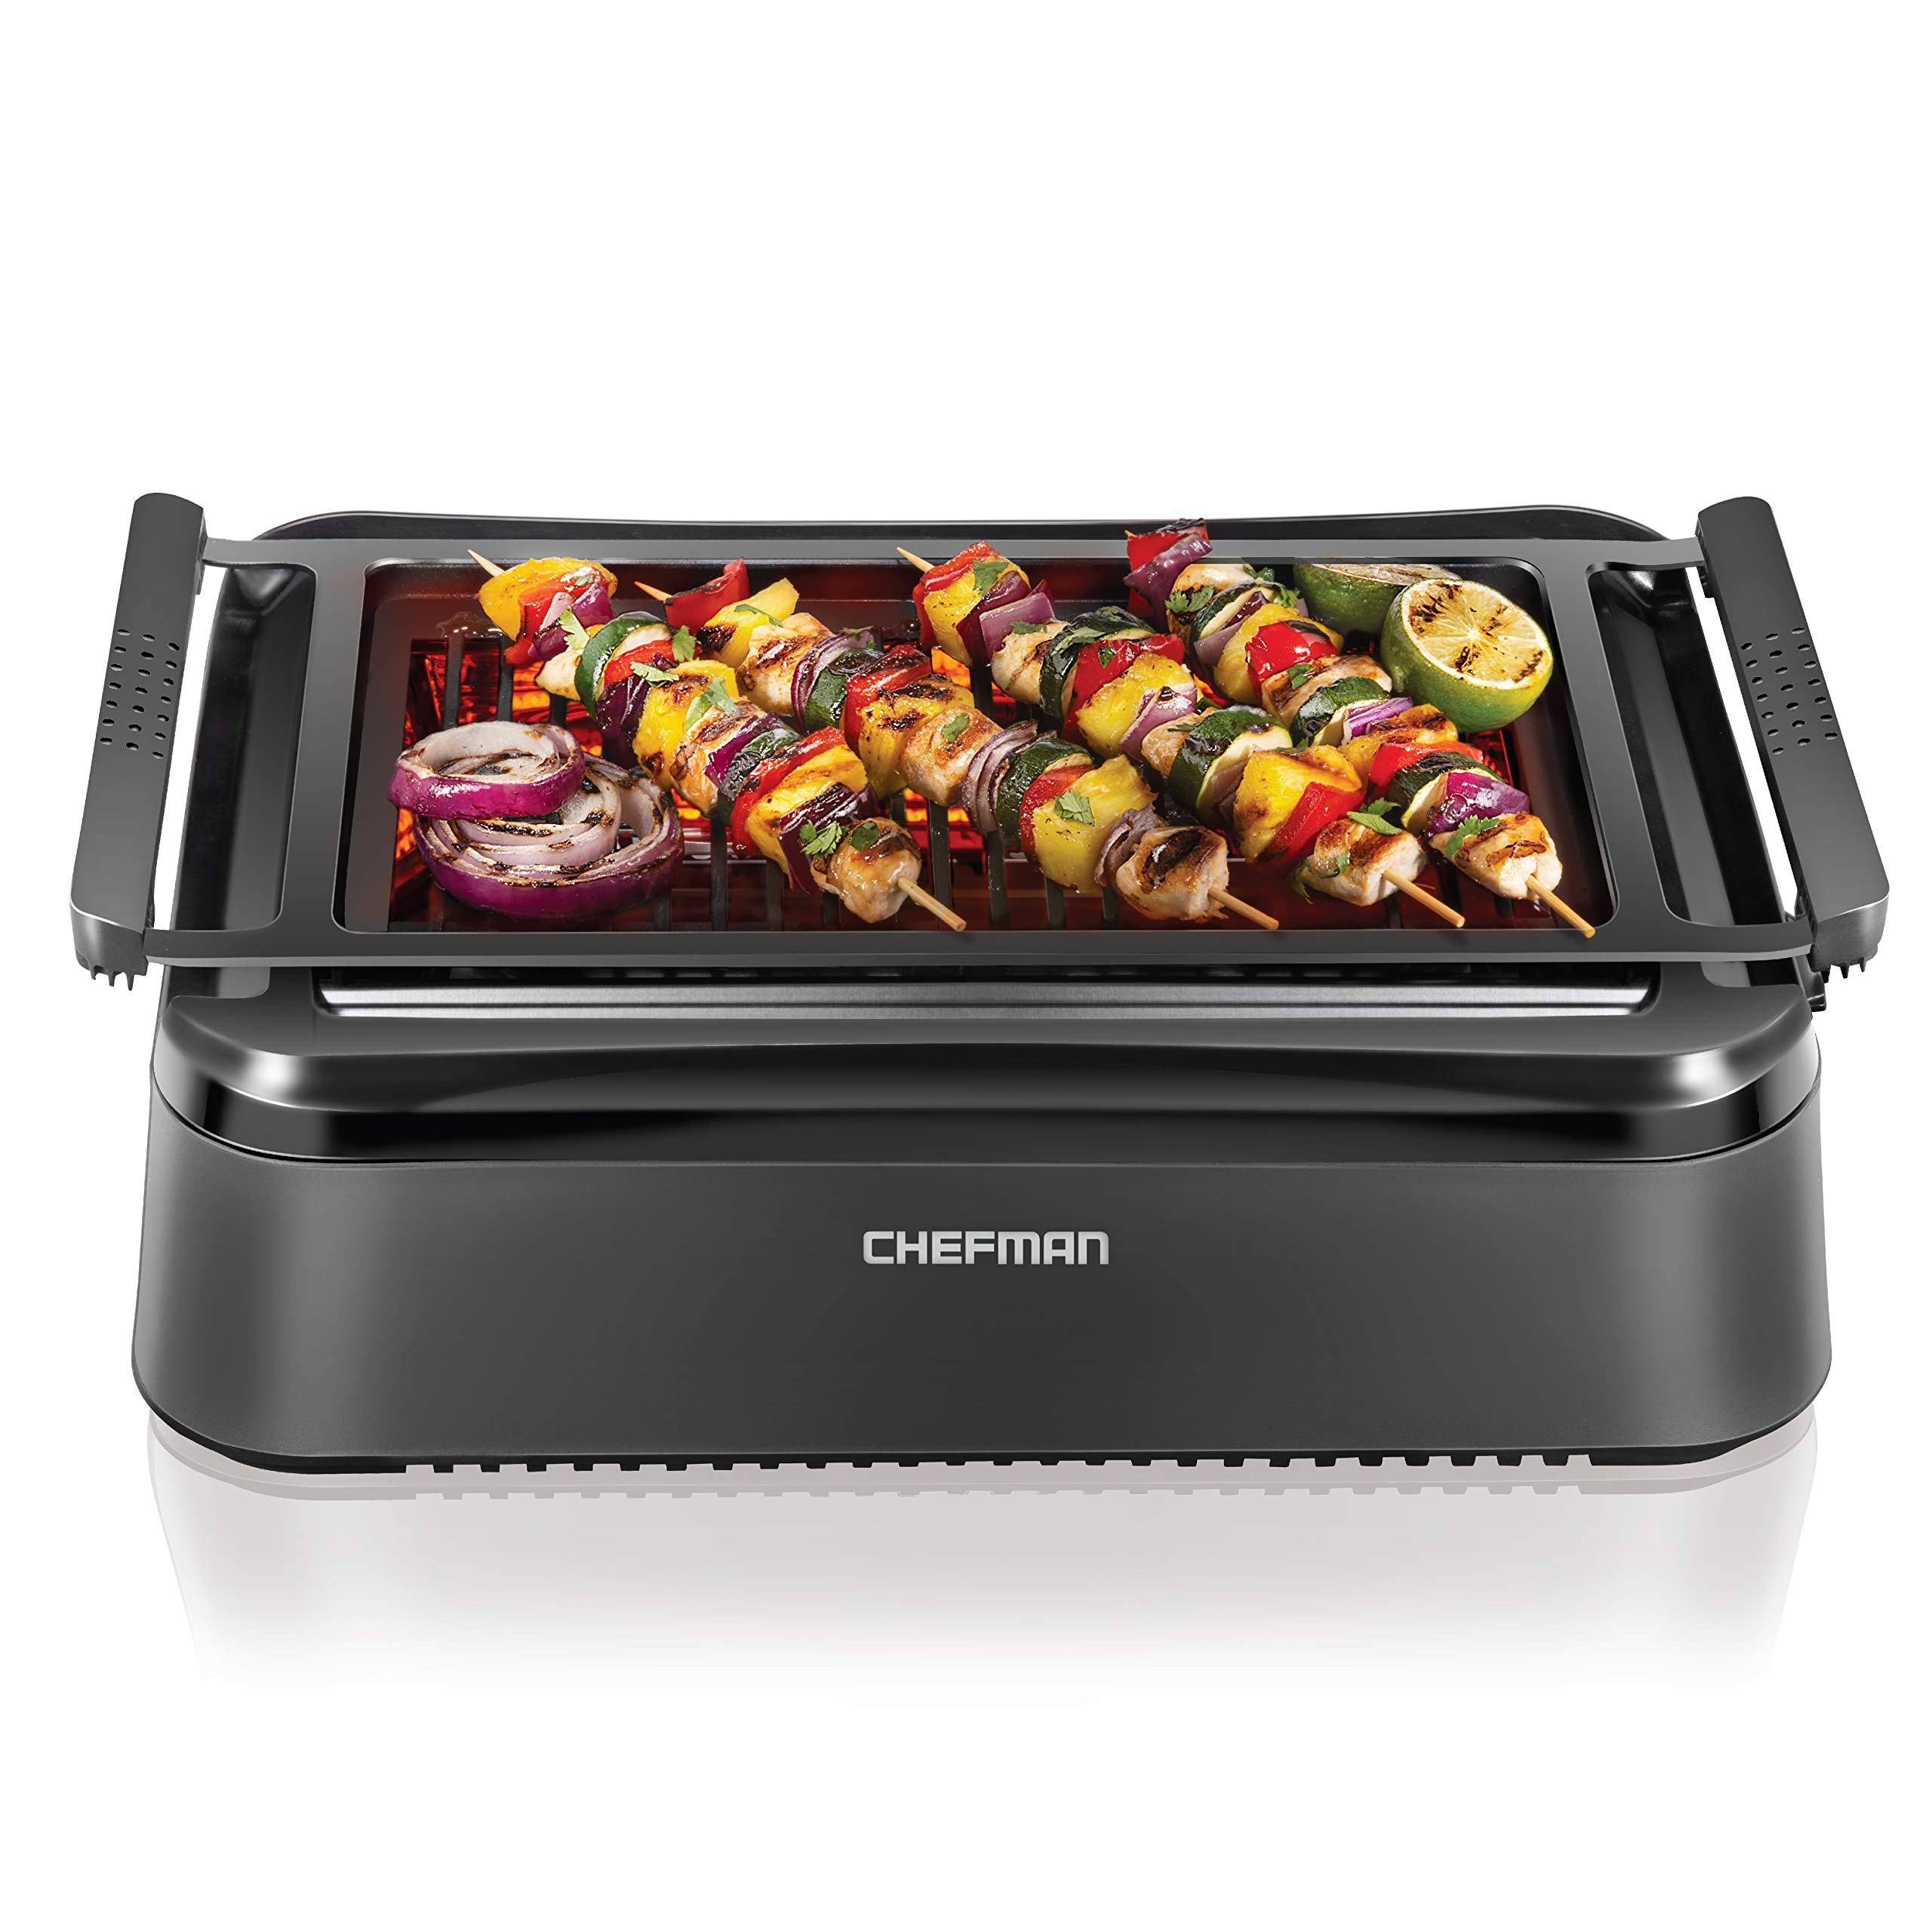 Chefman Electric Smokeless Indoor Grill with Infrared Instant Heating Technology, Adjustable Temperature Knob for Customized BBQ Grilling, Dishwasher-Safe Non-Stick Grate and Drip Tray, Black